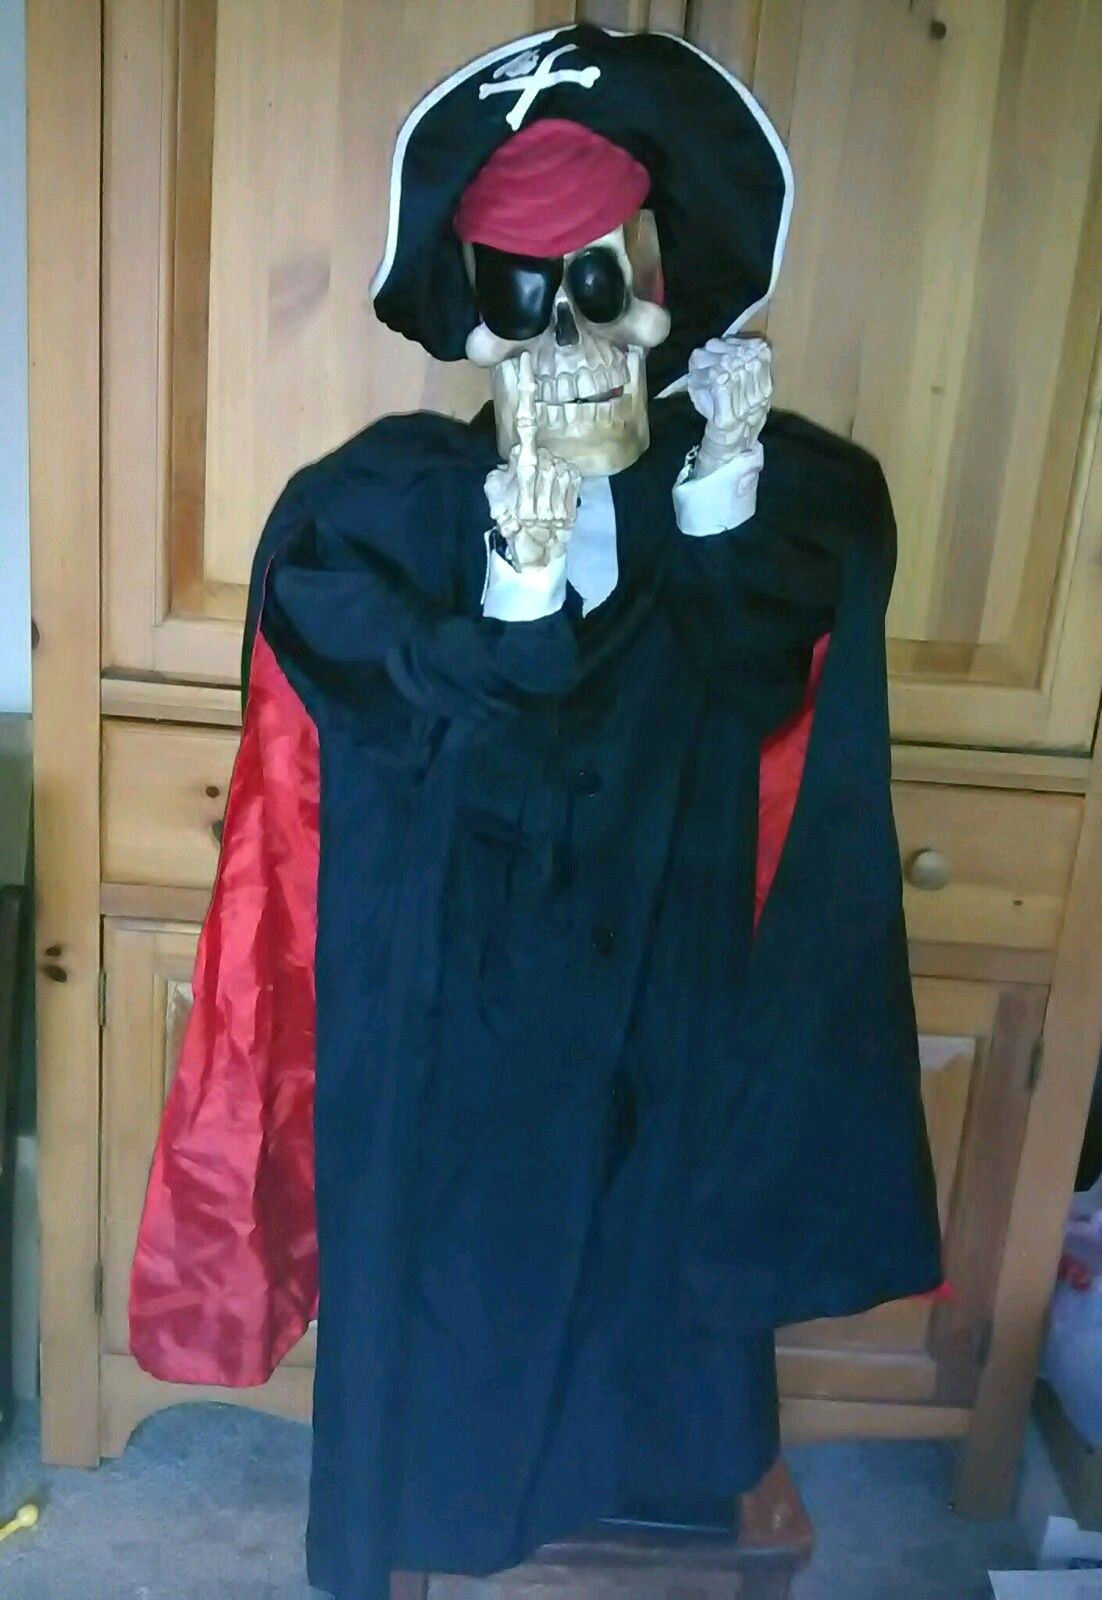 animated talking pirate skeleton motion sensor halloween prop gemmy scaryoke 3jpg